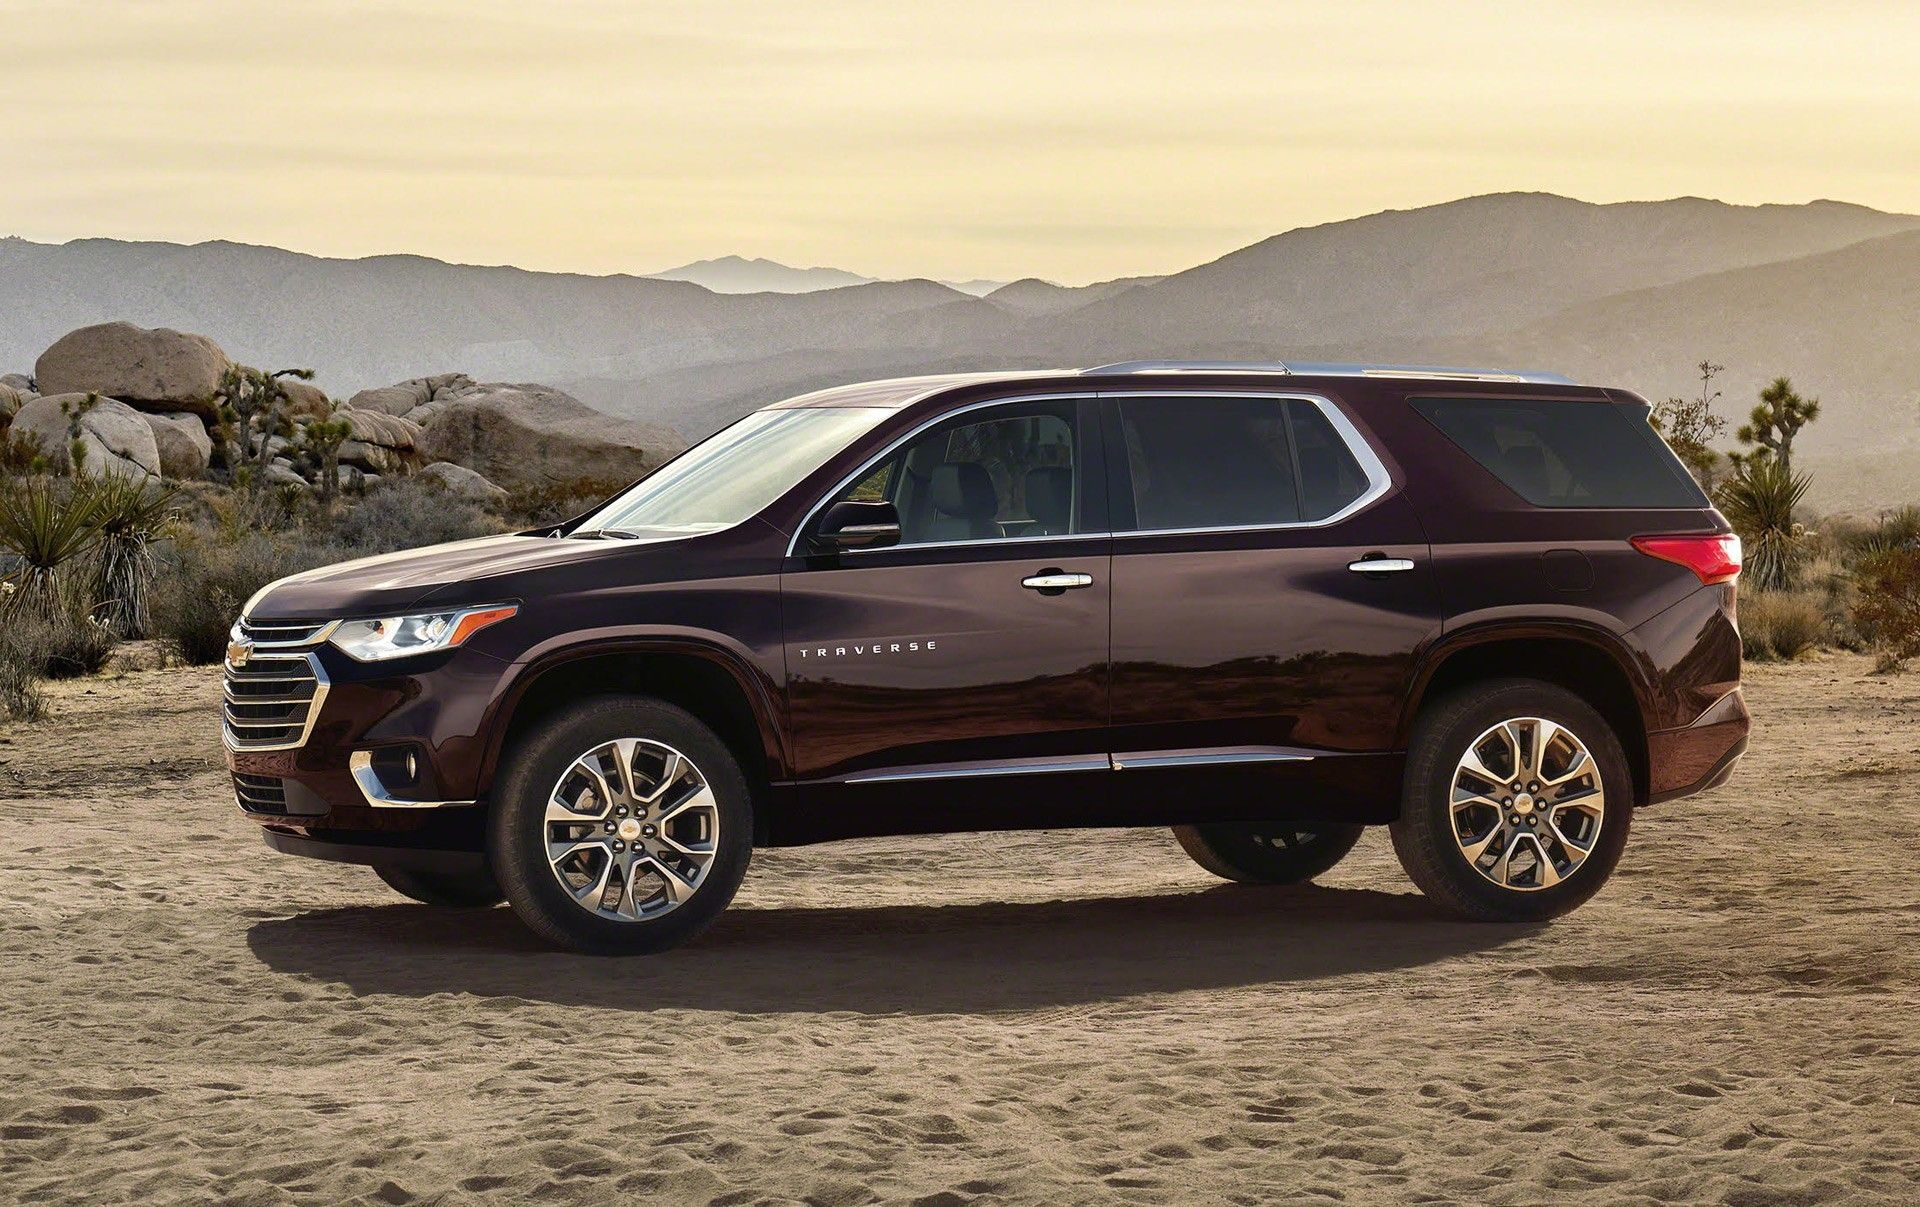 2019 Chevy Traverse Price Chevrolet Traverse Chevrolet Suv Chevrolet